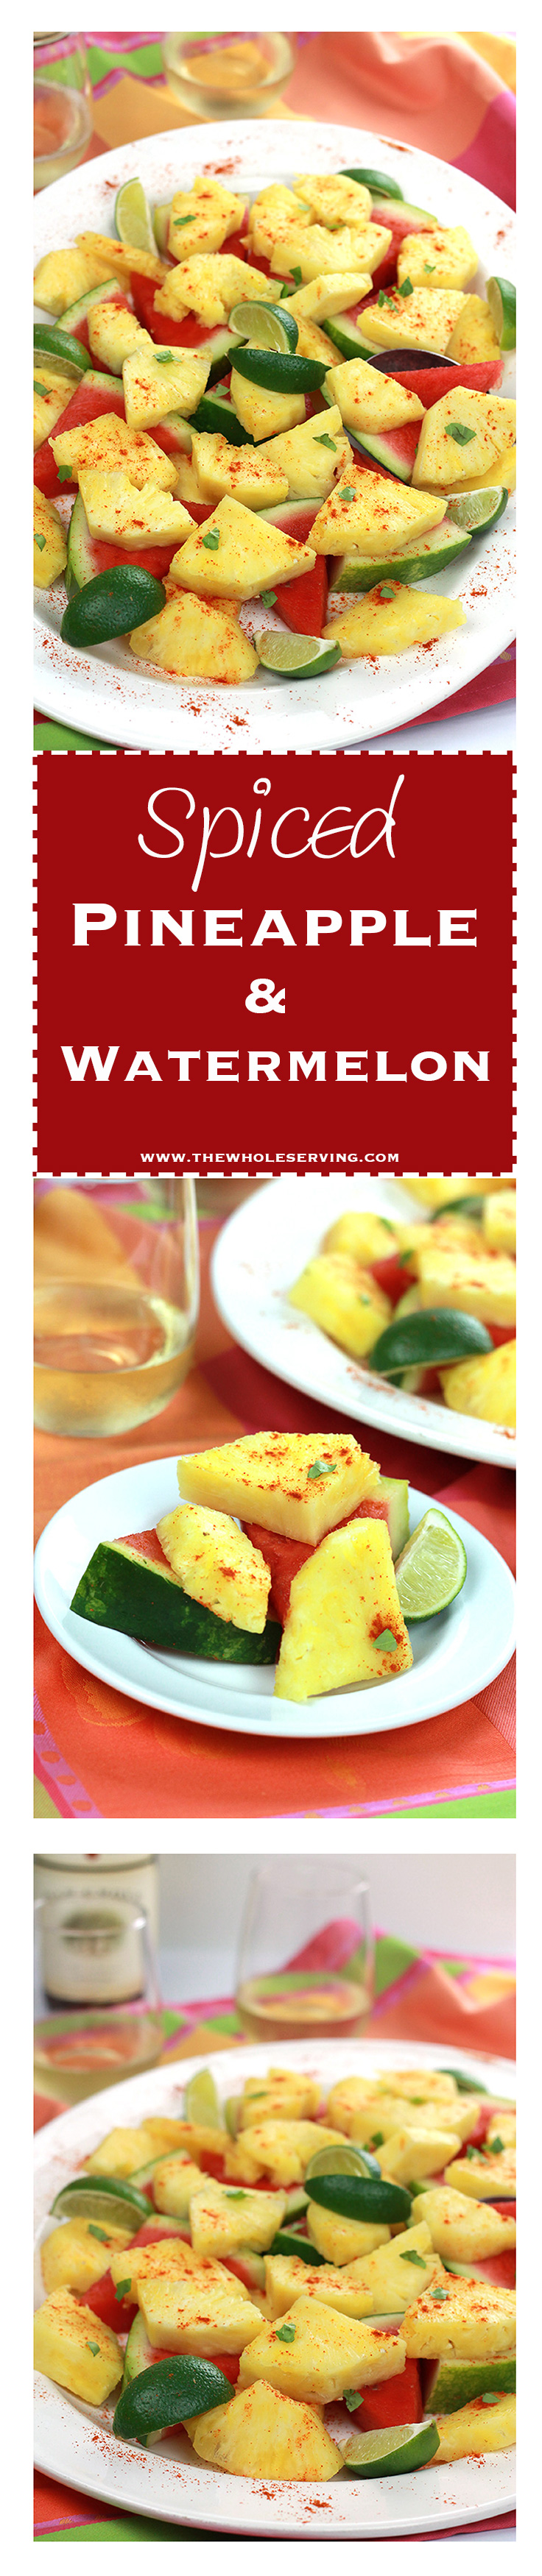 Spiced Pineapple & Watermelon - sweet juicy pineapple and watermelon slices, sprinkled with hot chili pepper and a twist of lime.What a wonderful way to spice it up!